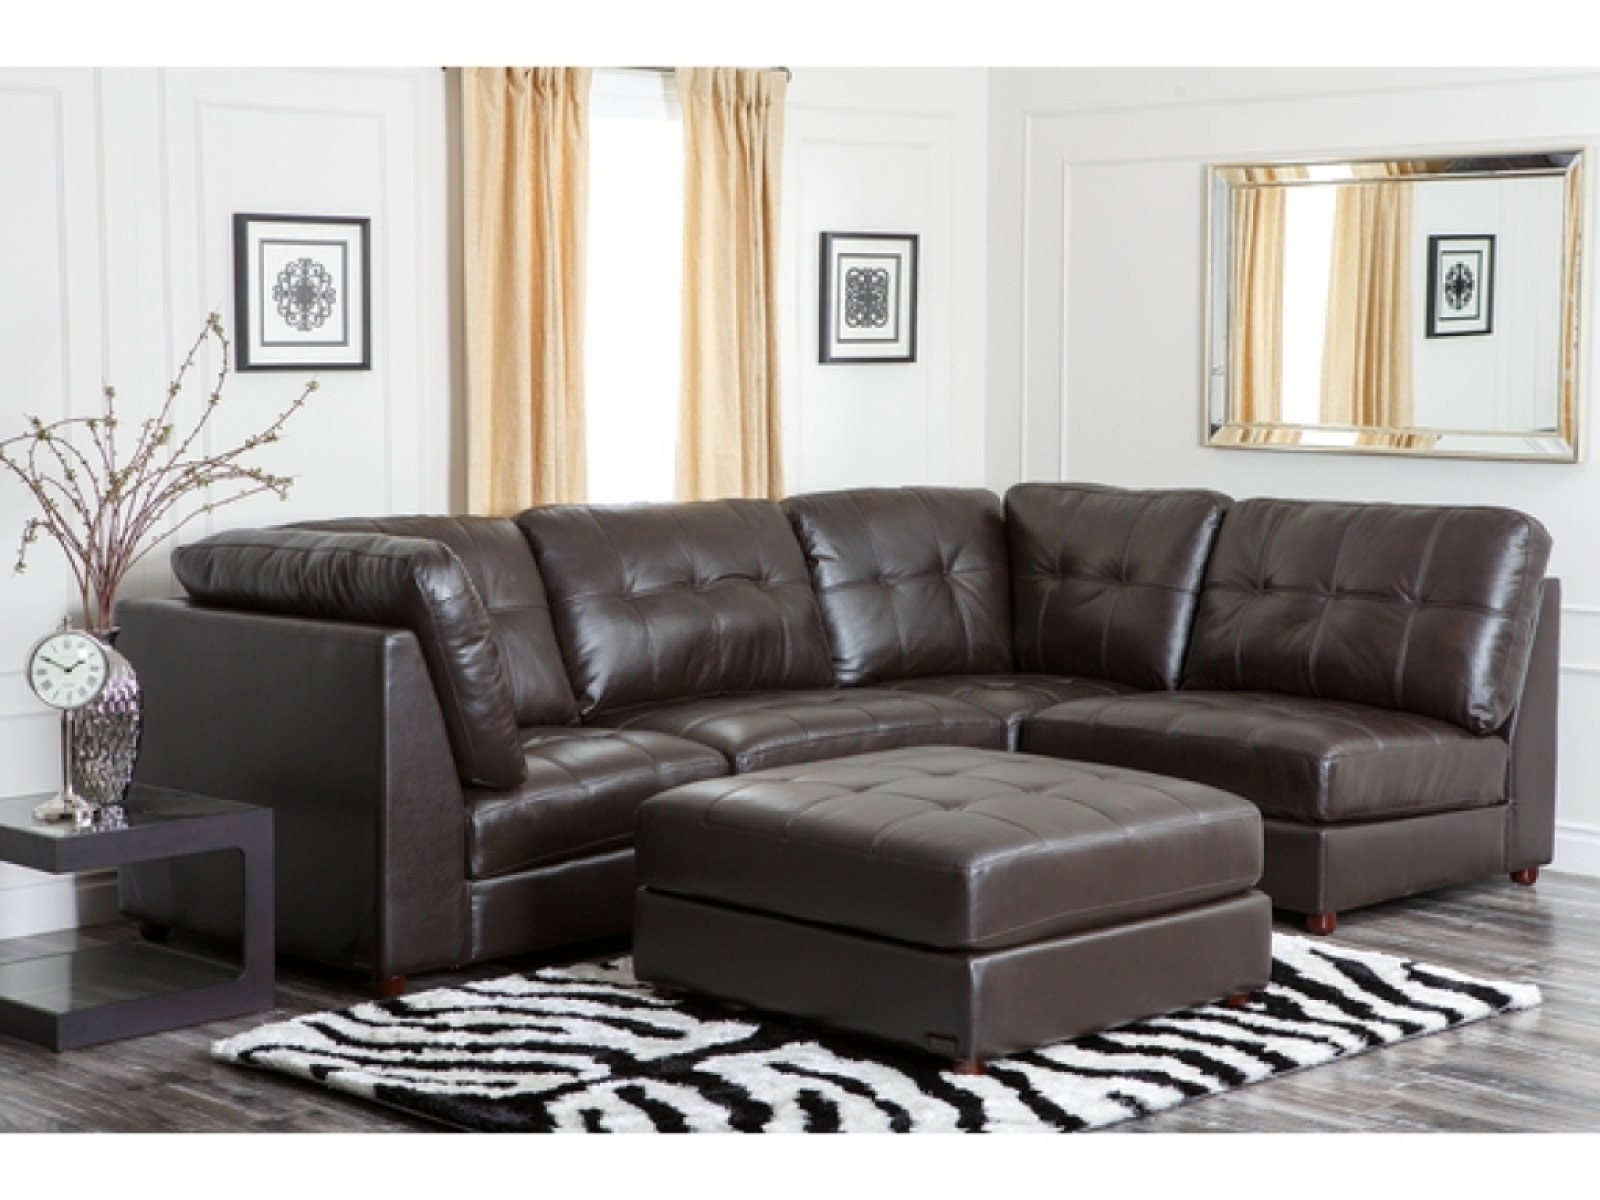 Trendy Sectional Sofas That Can Be Rearranged Regarding ▻ Sofa : 15 3058702 Poster P 1 A Modular Sofa That Can Rearrange (View 18 of 20)